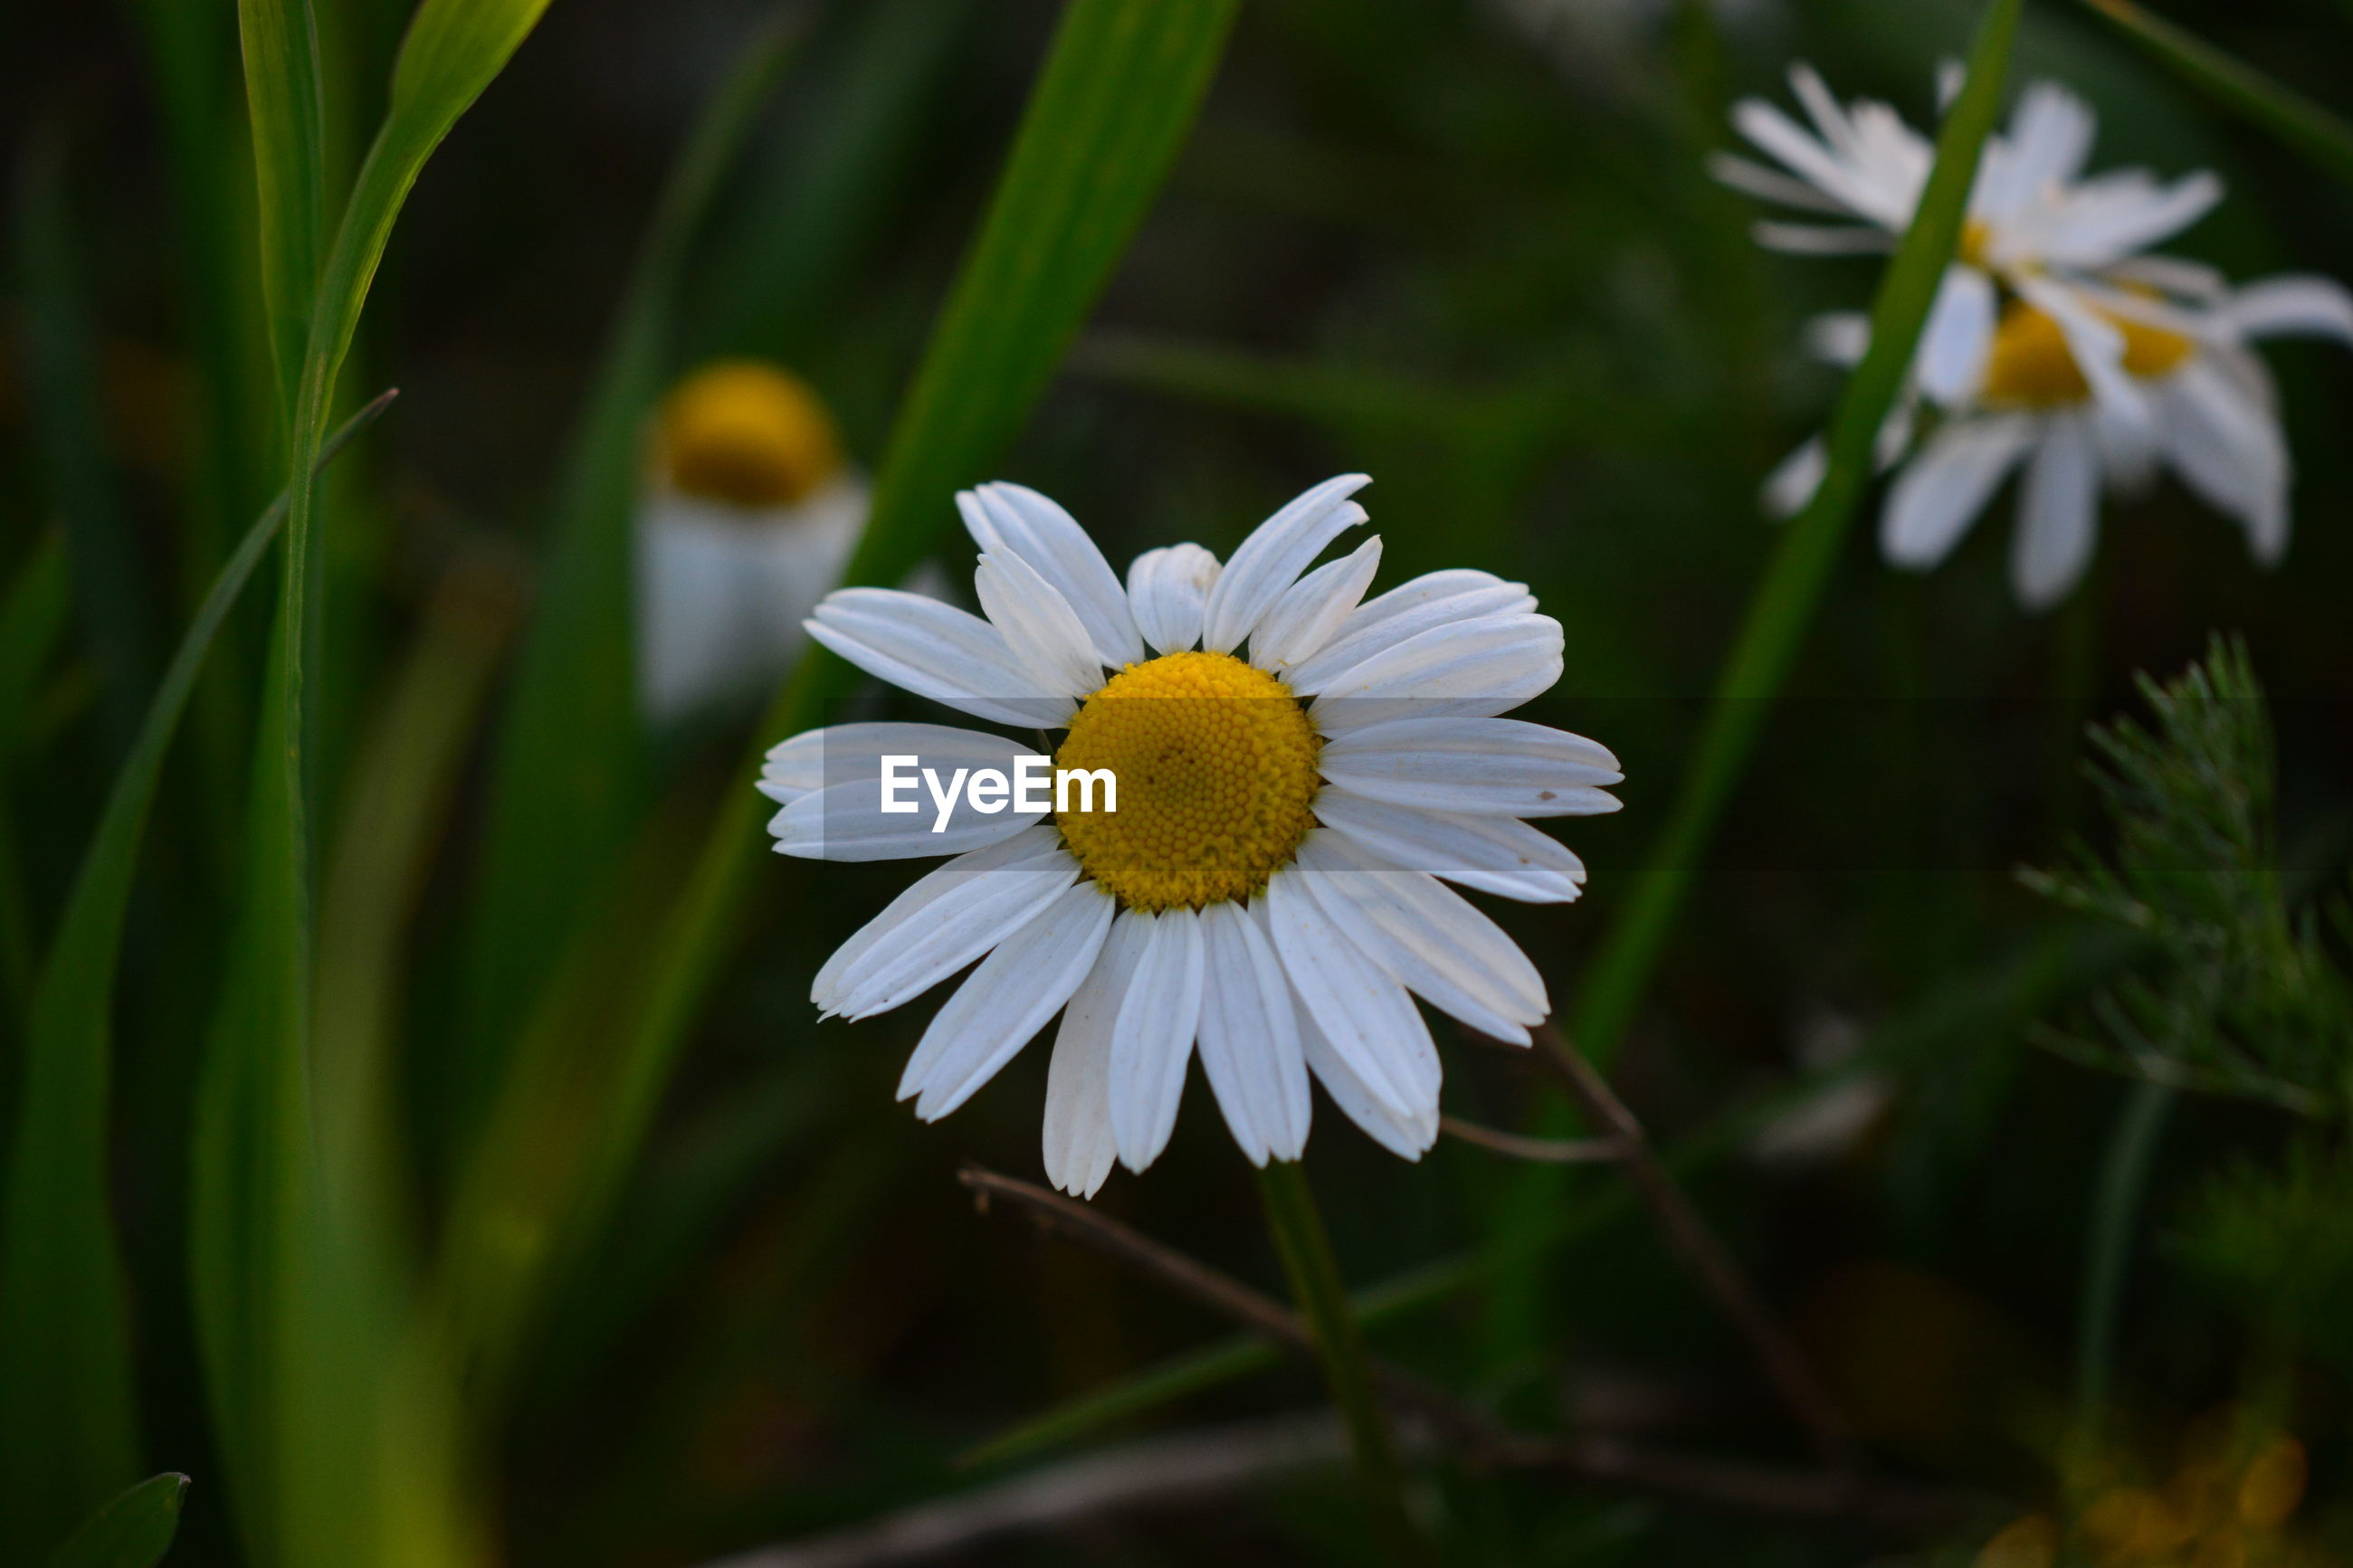 CLOSE-UP OF WHITE DAISY ON PLANTS